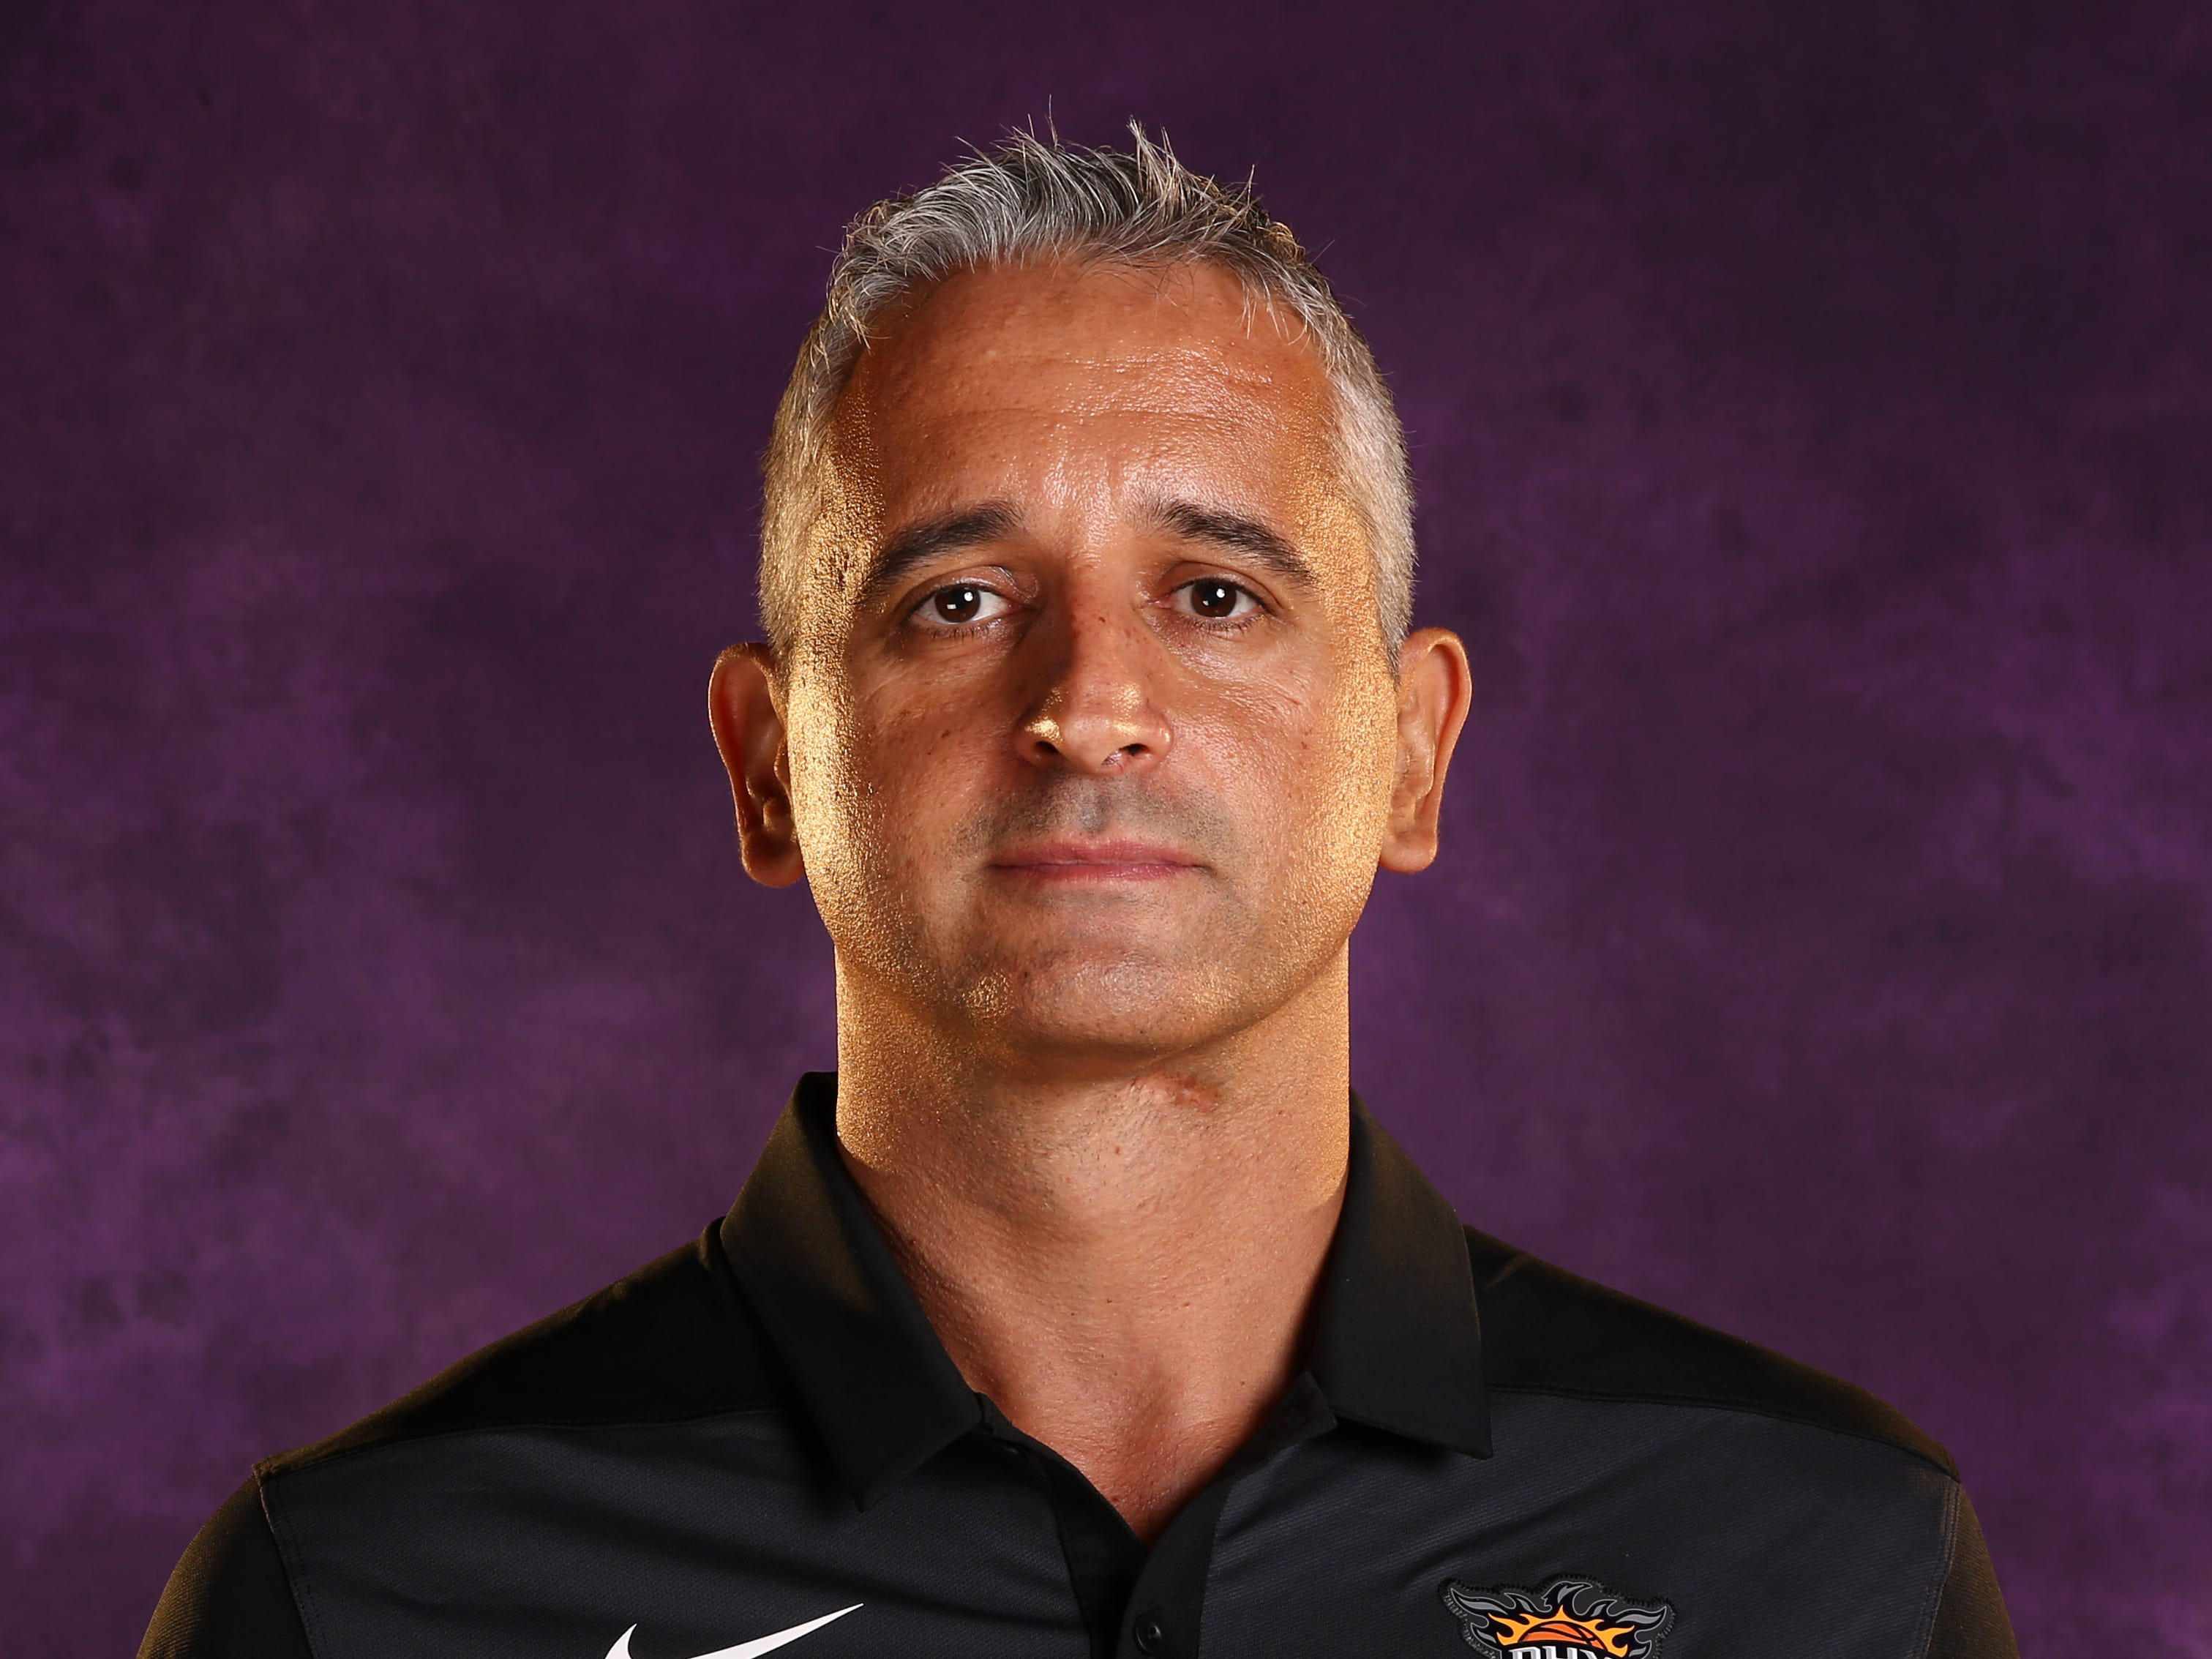 Phoenix Suns head coach Igor Kokoskov during media day at Talking Stick Resort Arena on Aug. 21, 2018, in Phoenix, Ariz.